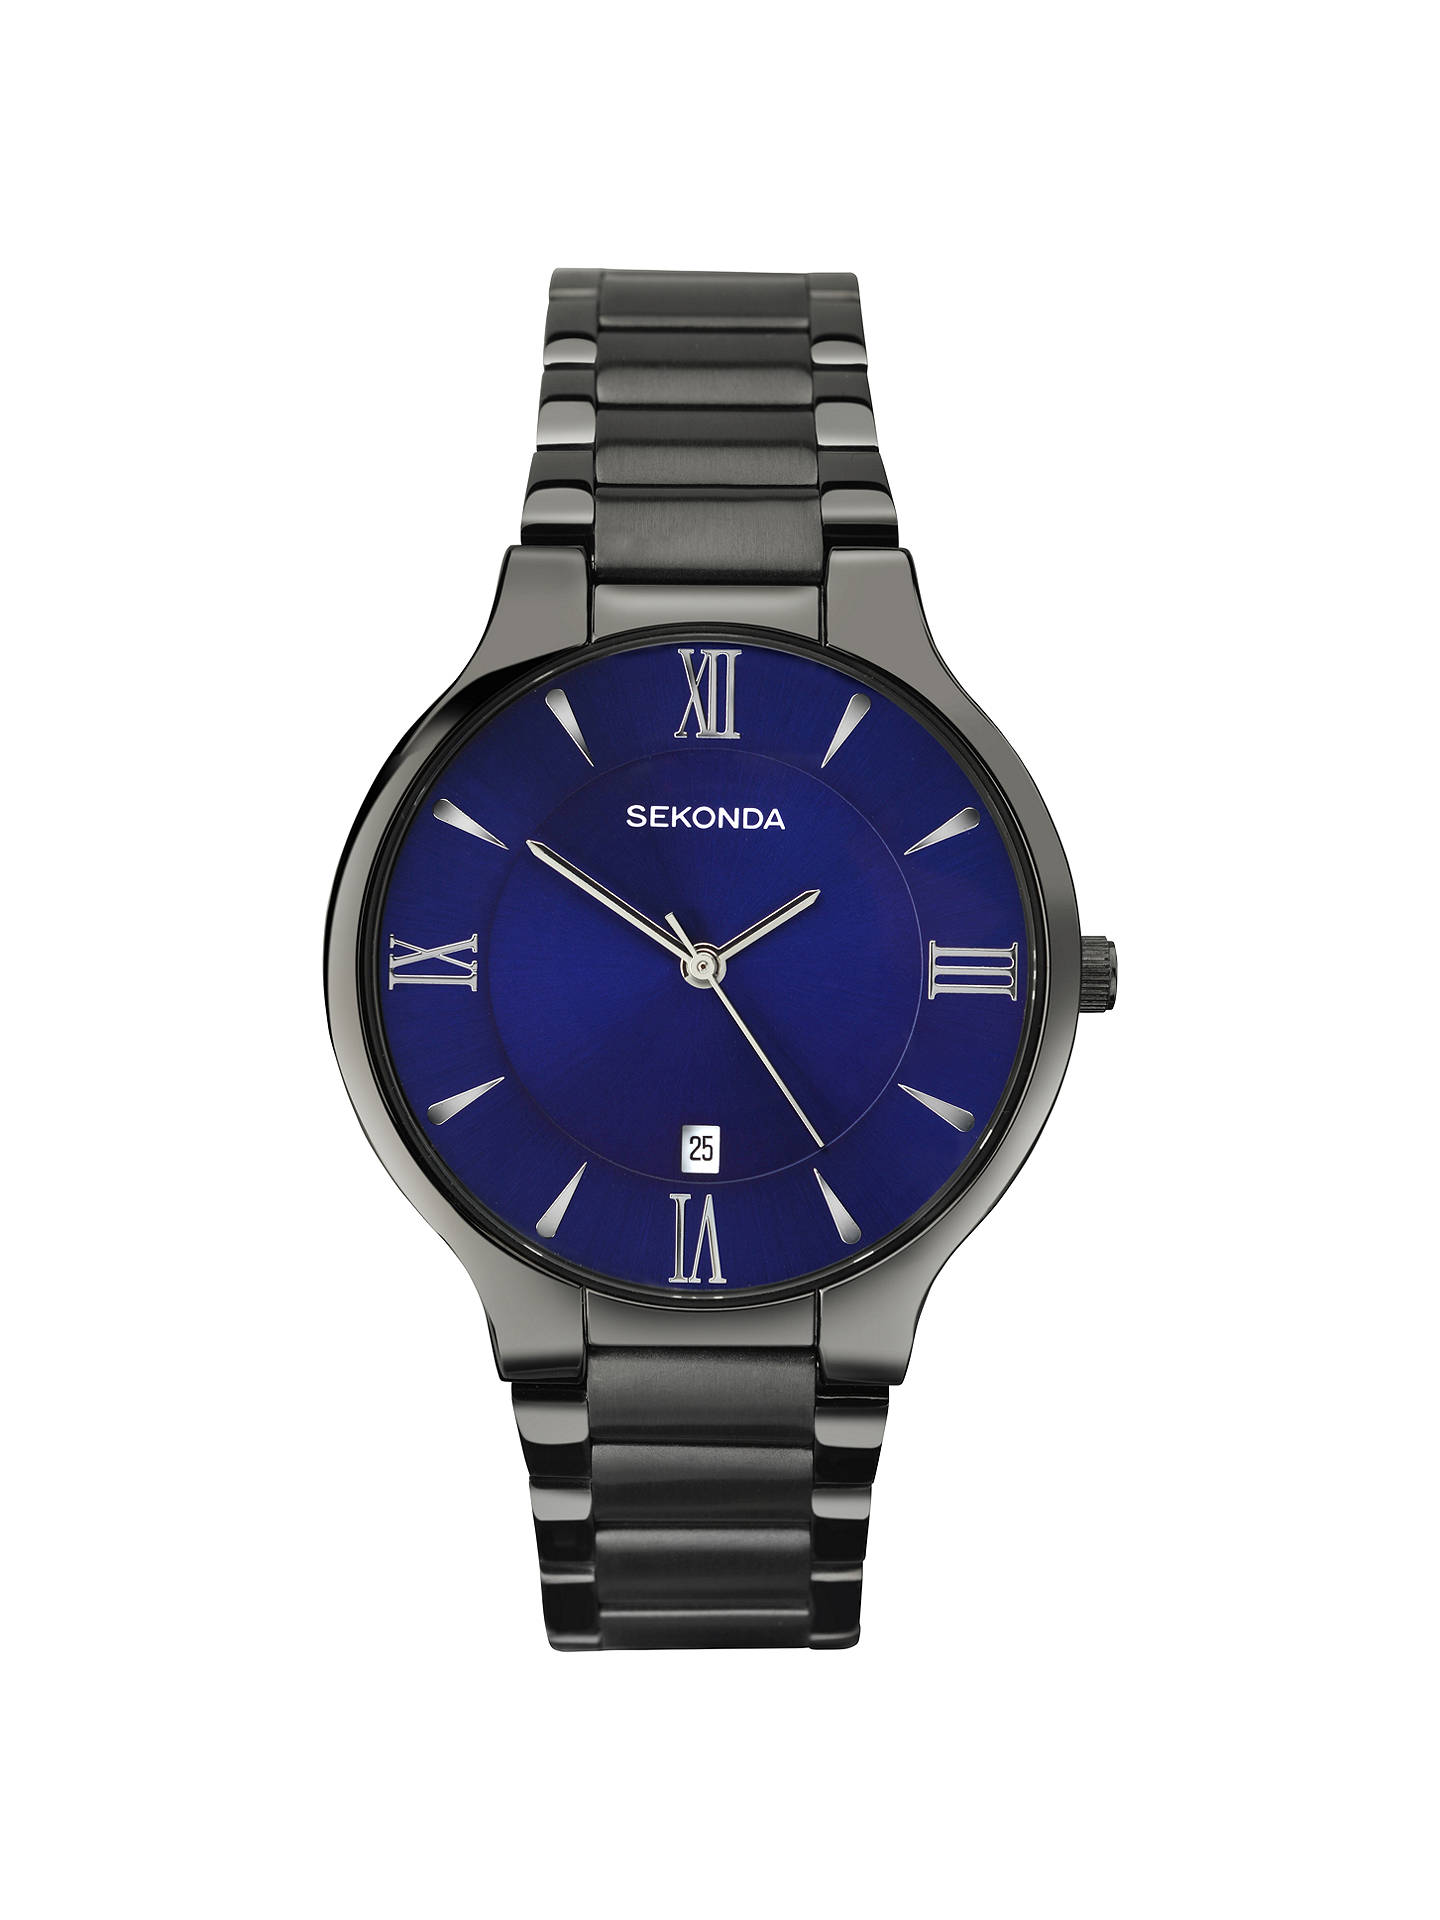 BuySekonda 1140.00 Men's Date Bracelet Strap Watch, Gunmetal/Indigo Online at johnlewis.com